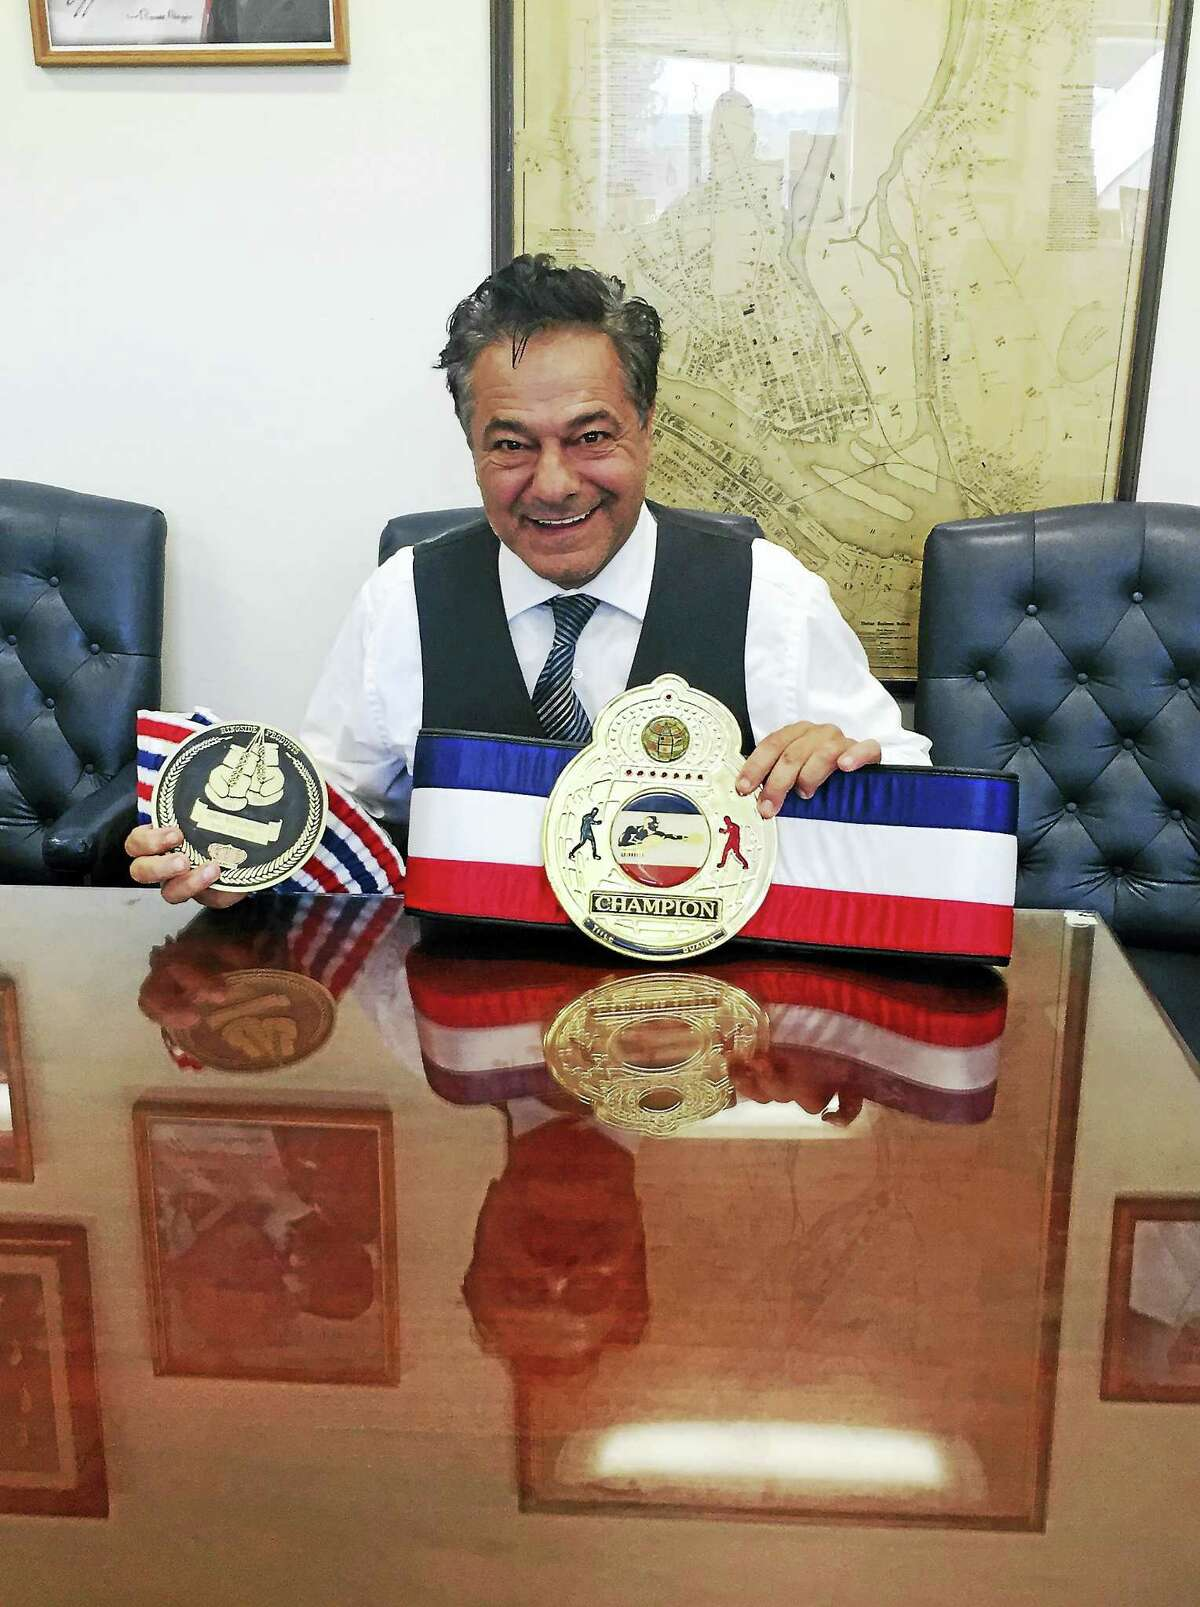 Mayor David Cassetti shows off the belts he earned during his boxing career.